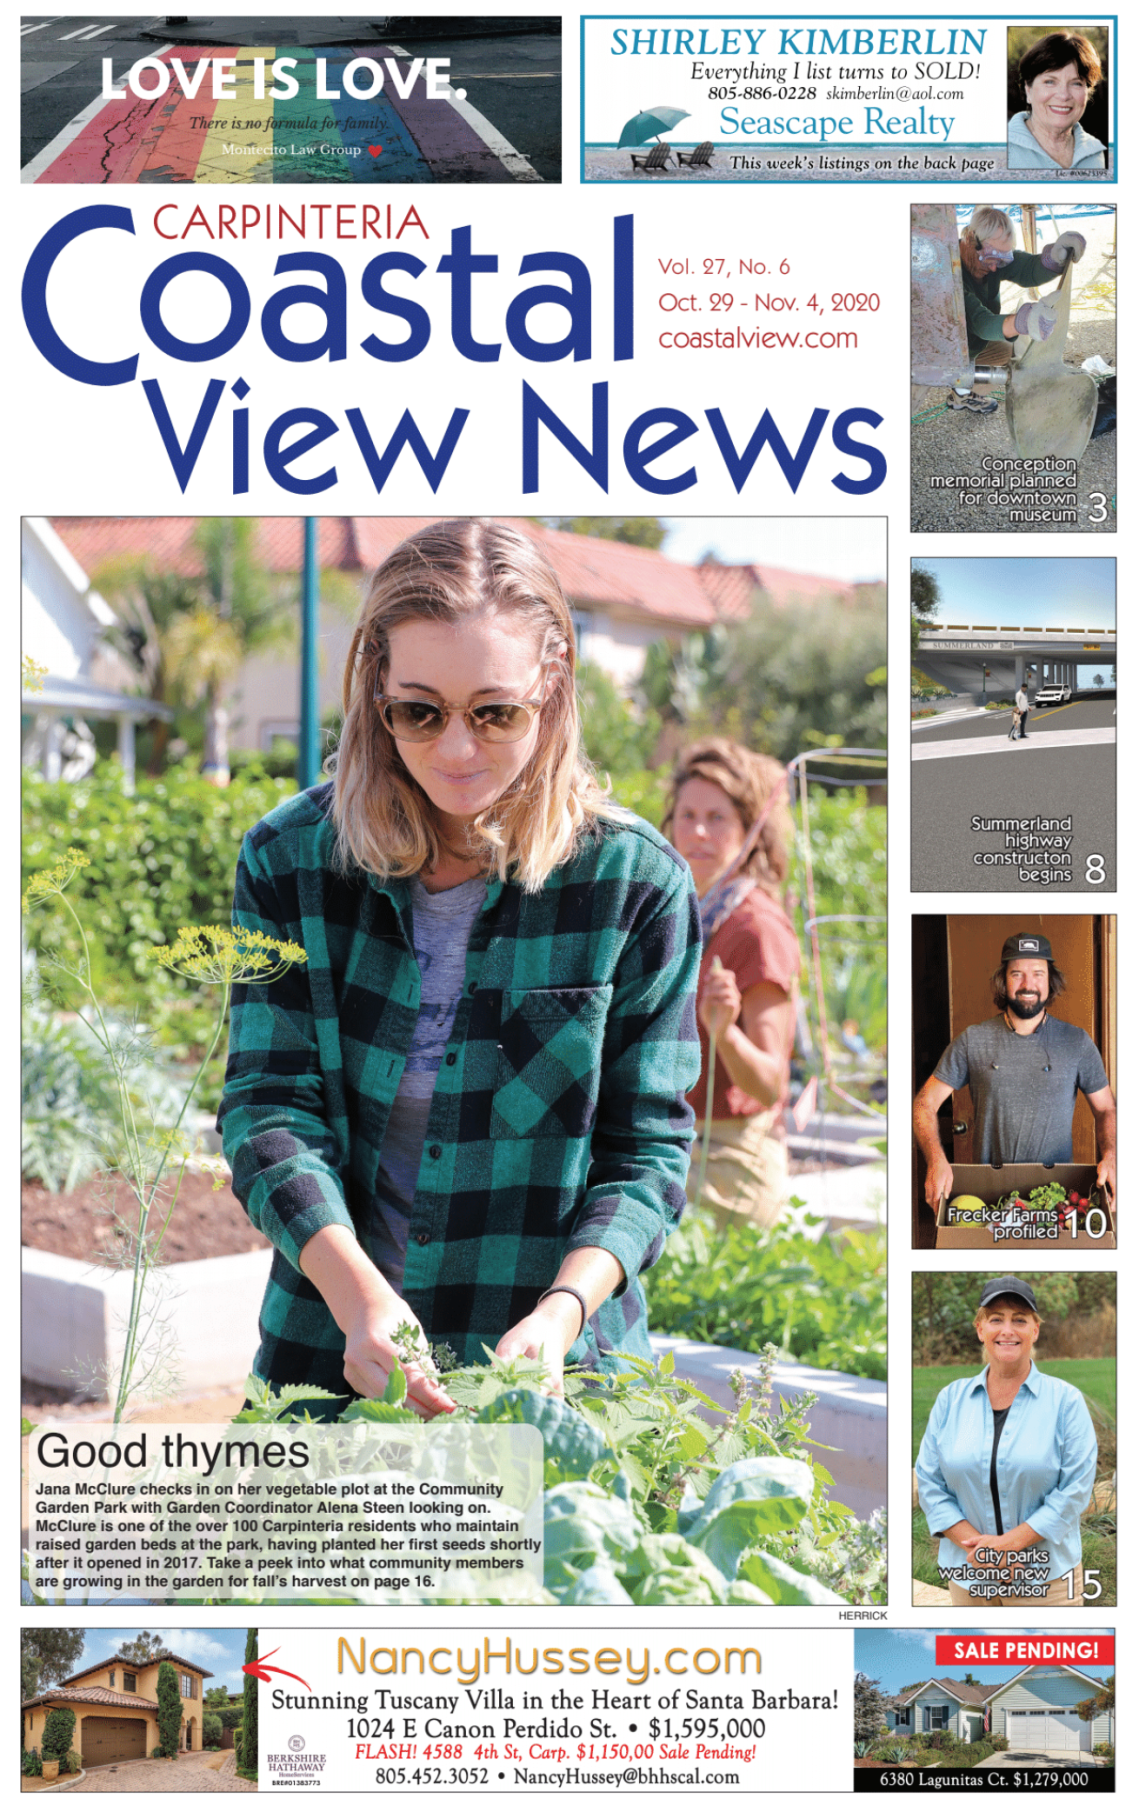 Coastal View News • October 29, 2020